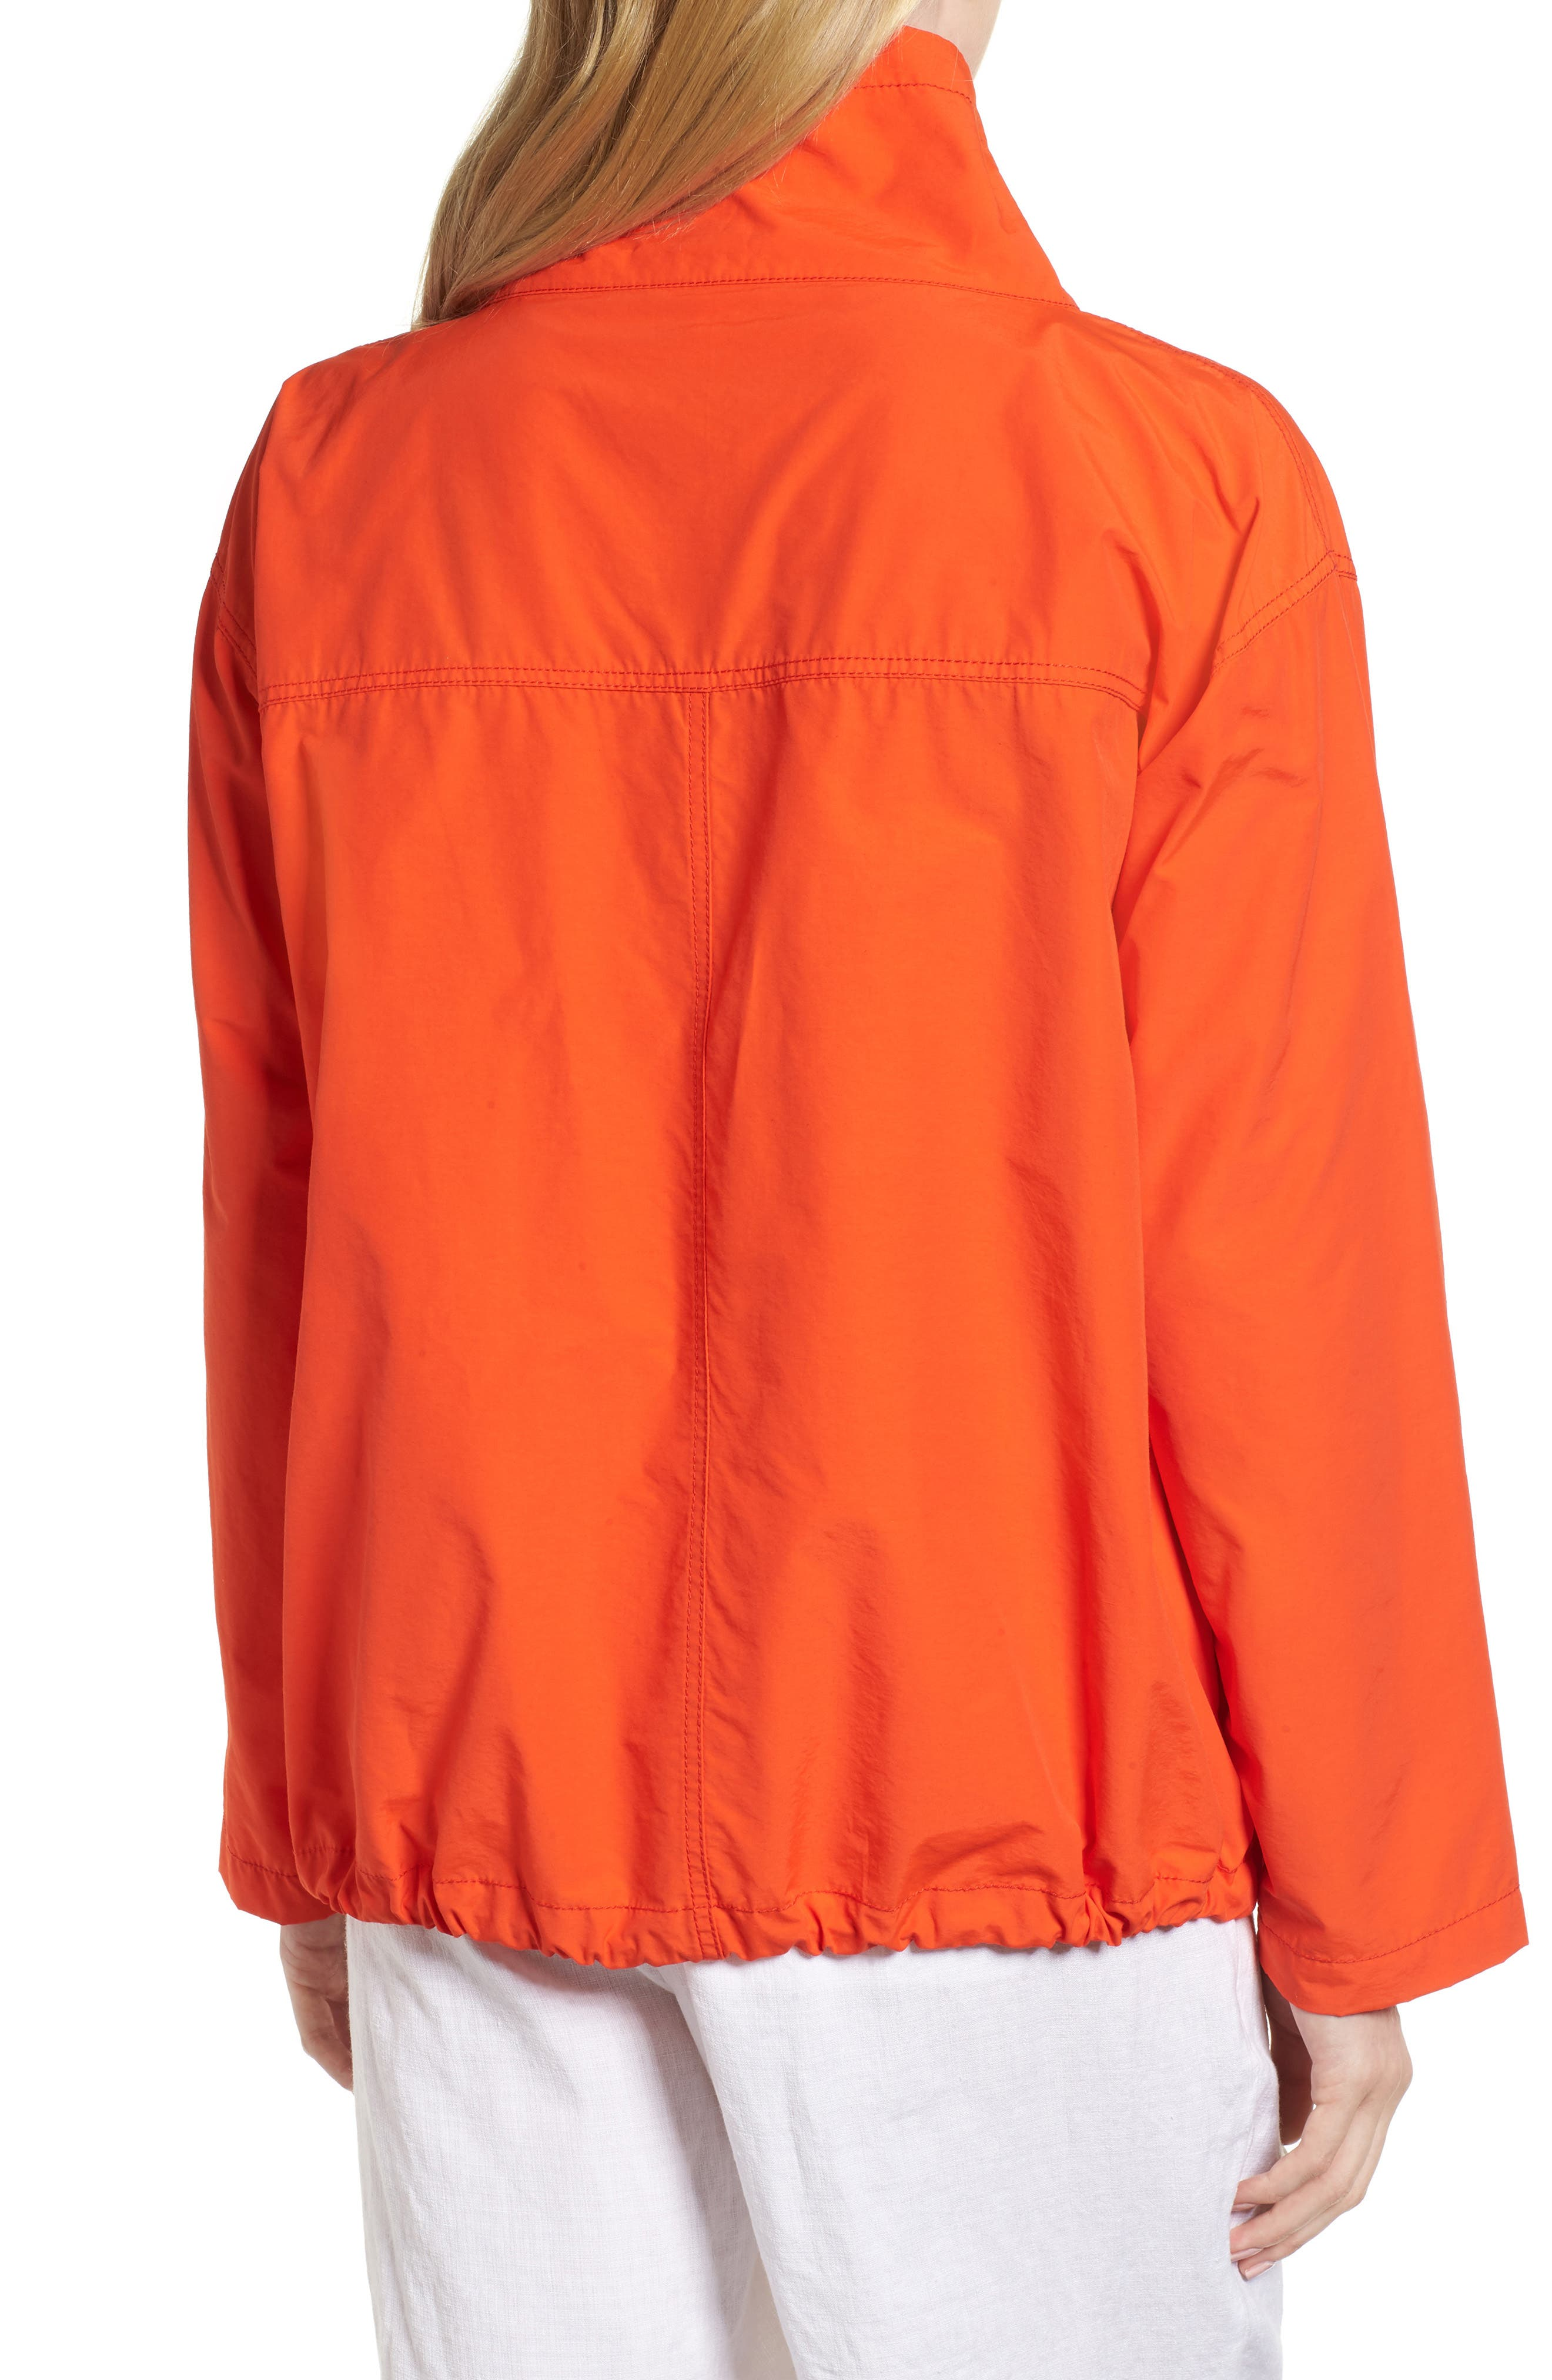 Pullover Jacket,                             Alternate thumbnail 2, color,                             637